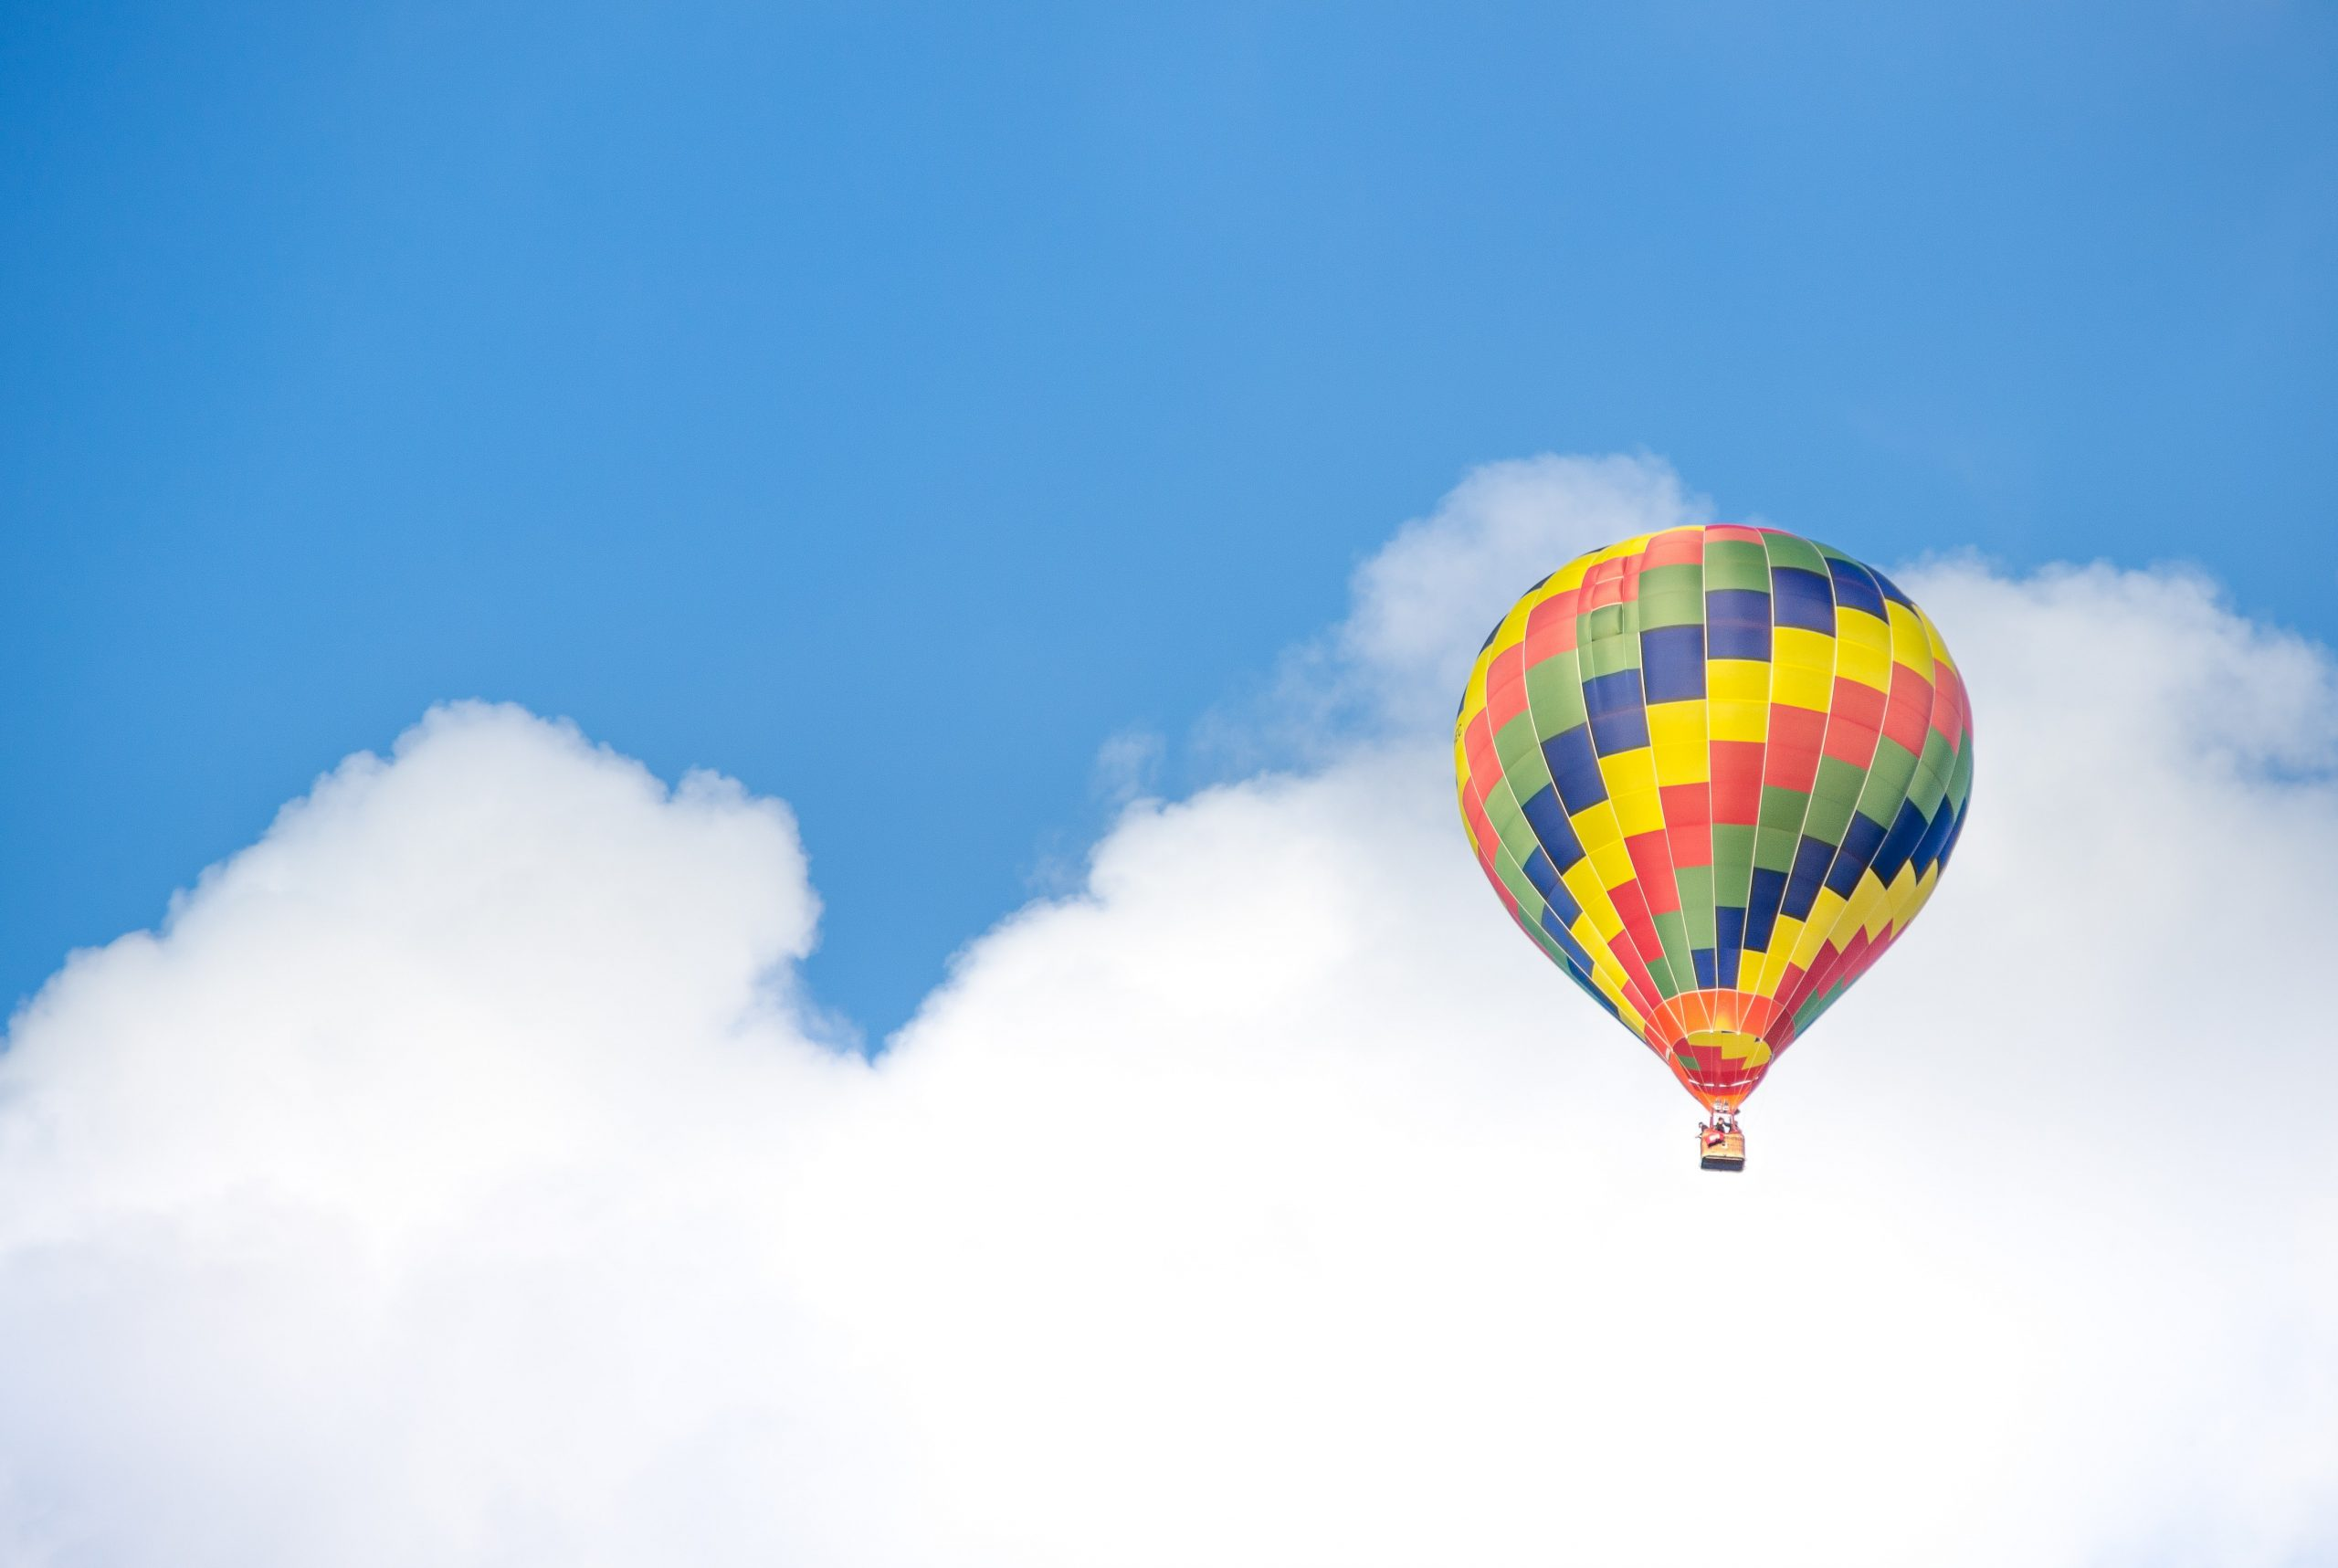 Happy hot air balloon image happiness concept image